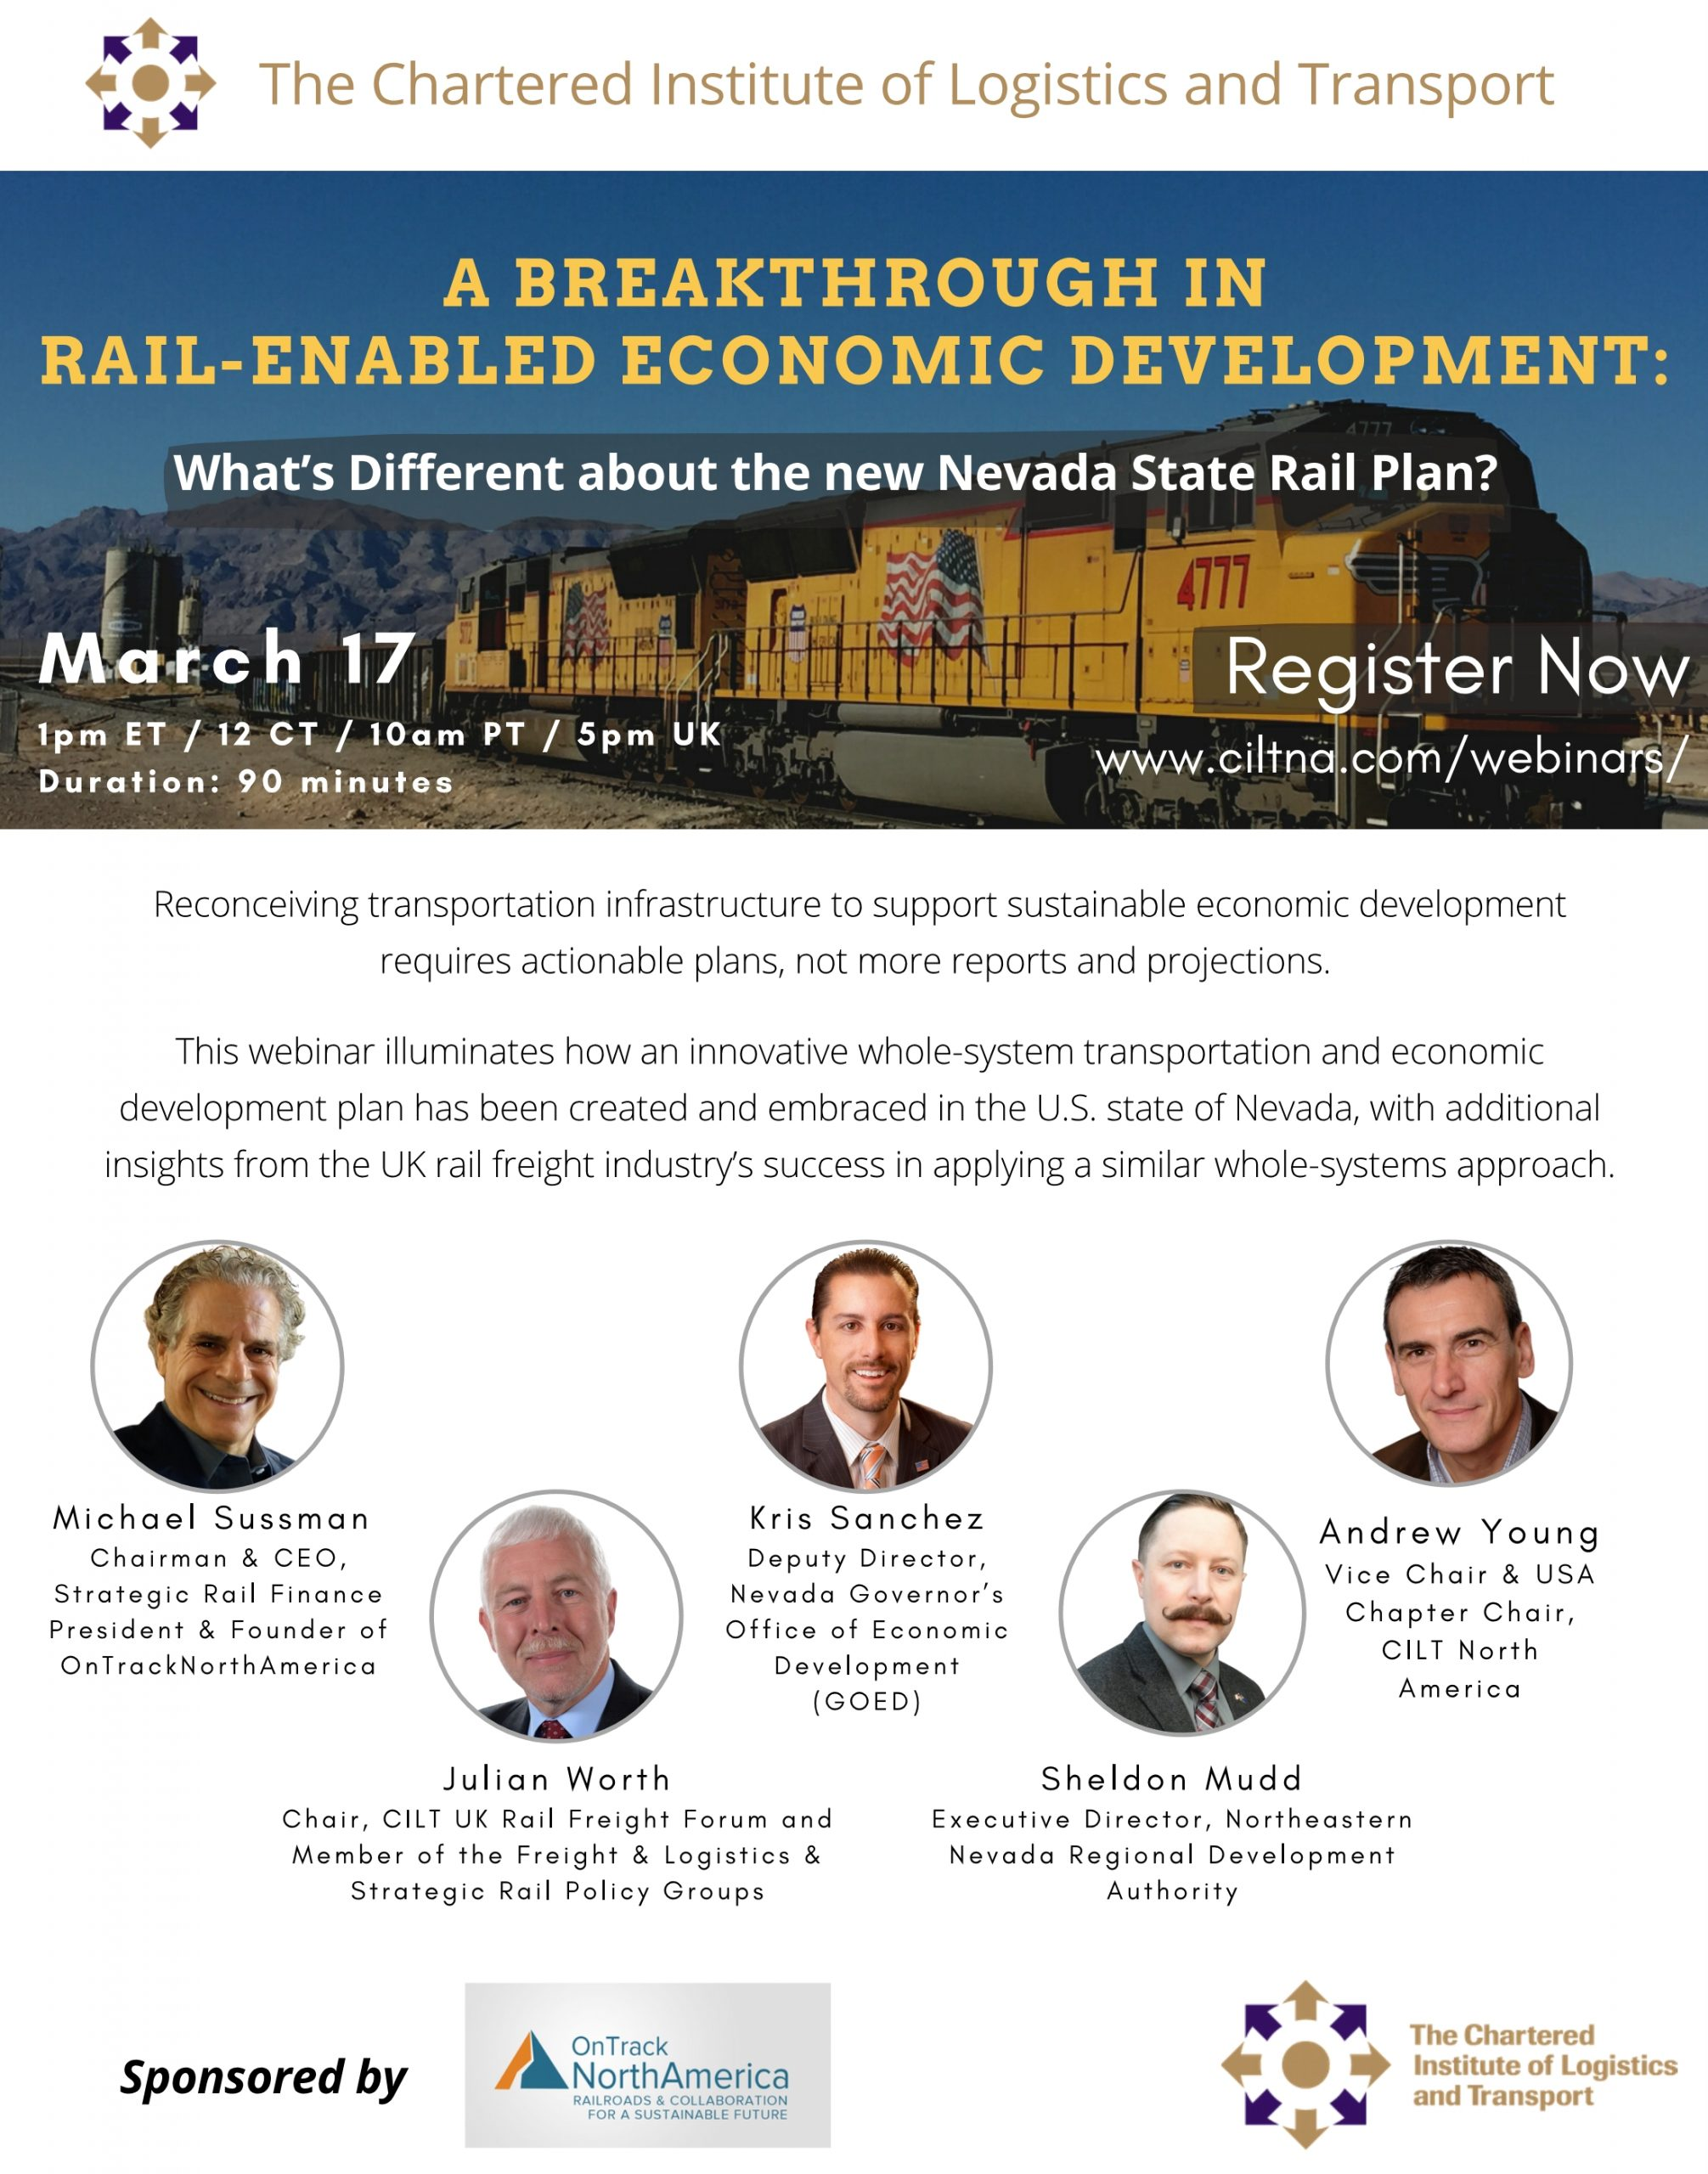 A Breakthrough in Rail-Enabled Economic Development: What's Different about the new Nevada State Rail Plan? - sponsored by OnTrackNorthAmerica